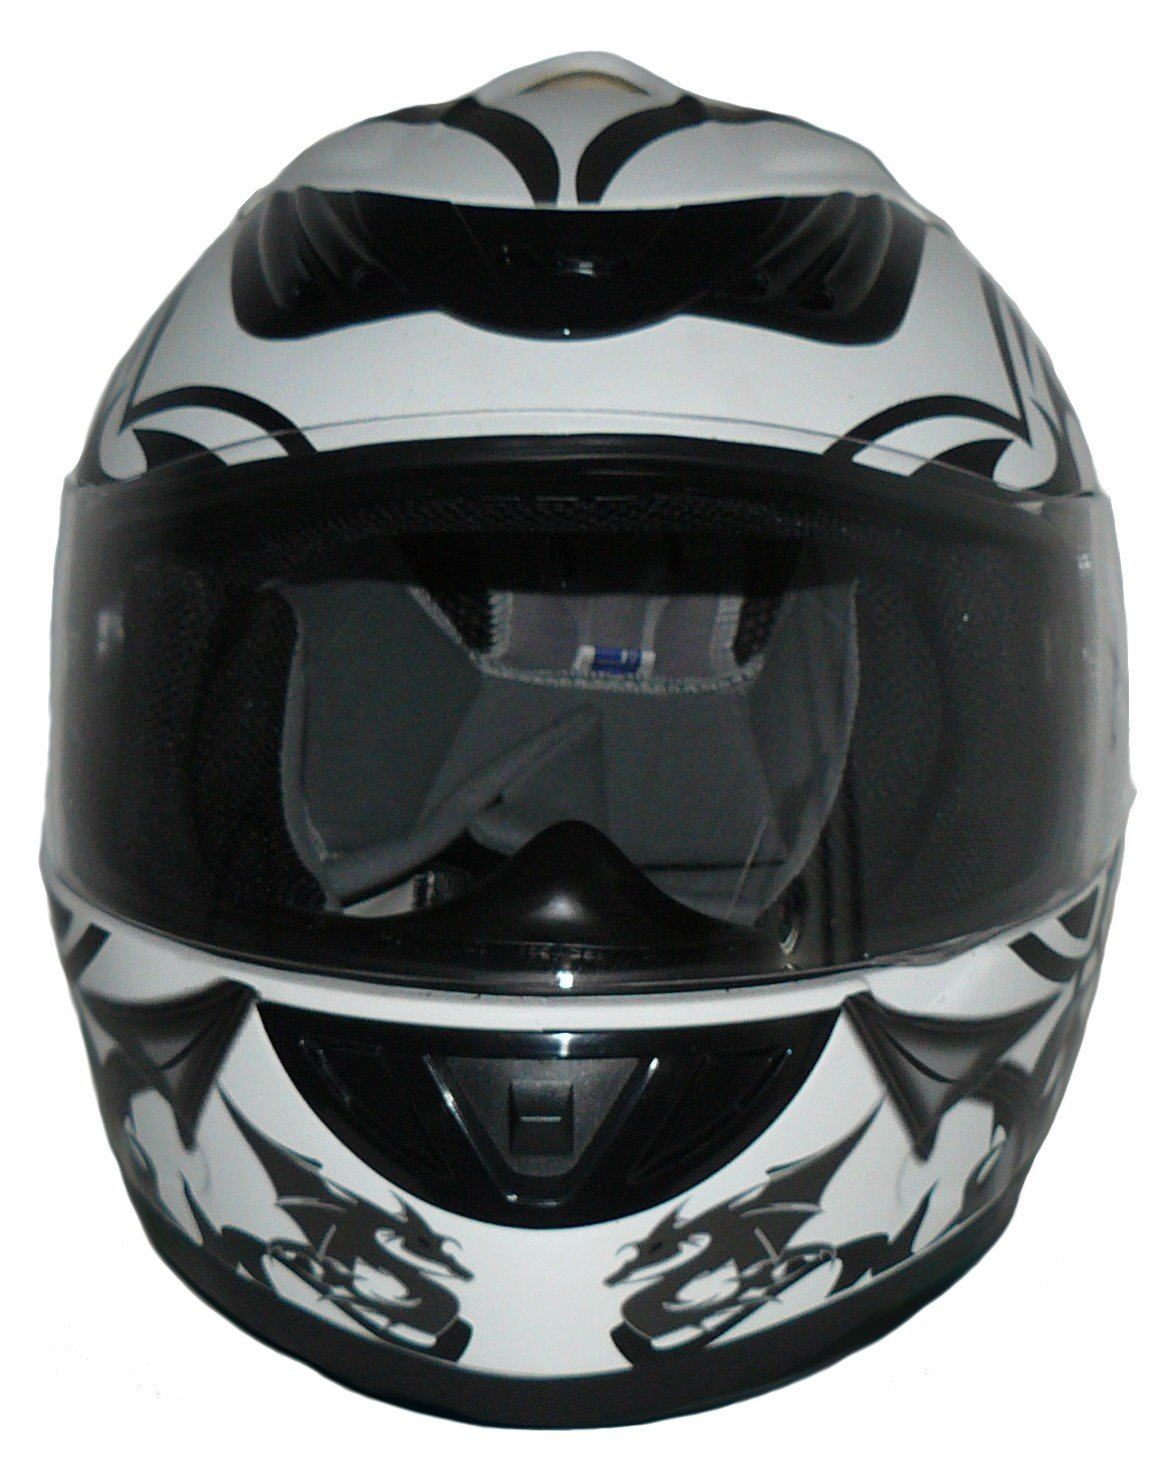 Protectwear Motorcycle helmet white grey with dragon design H510-11SW Size L